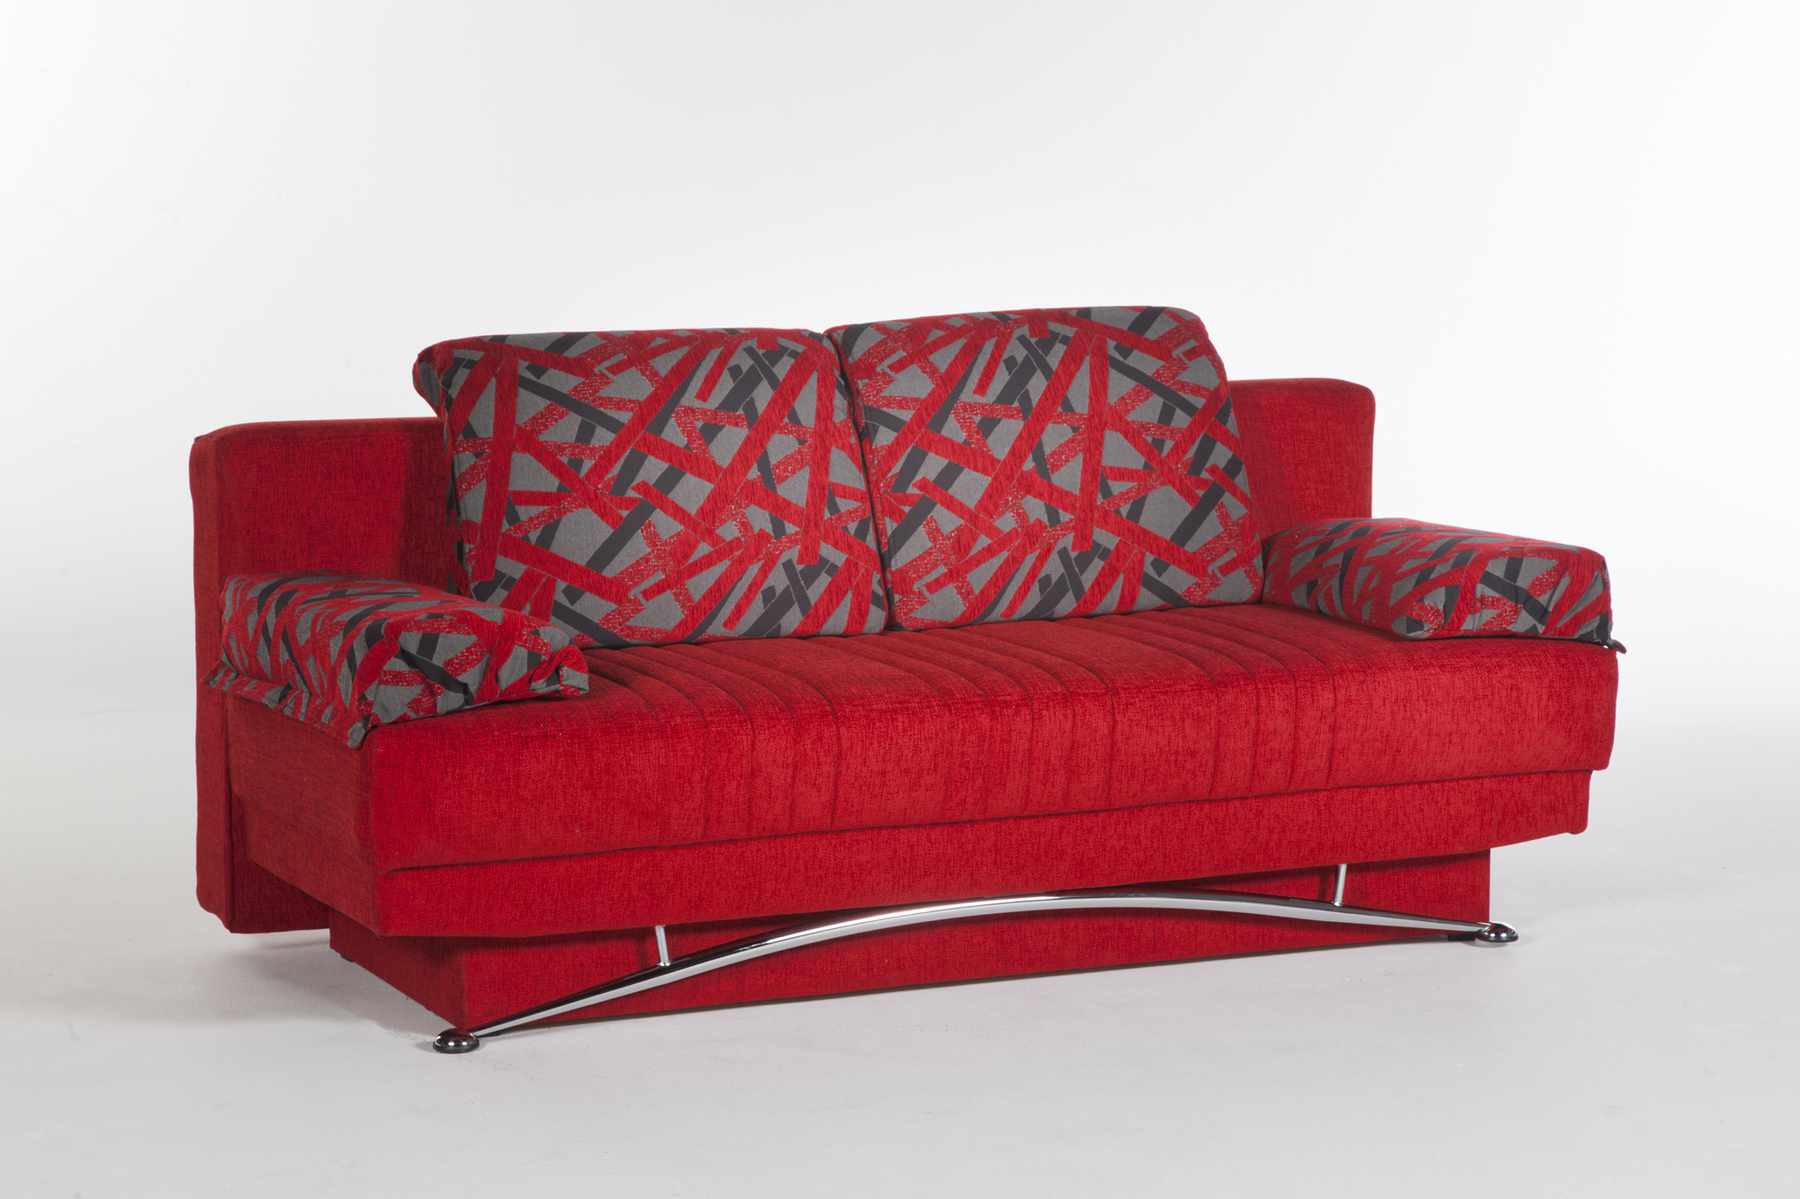 Red Sofas And Chairs Within Popular Fantasy Red Sofa Bed Sufantasy Sunset Furniture (Istikbal) Sleeper (Gallery 16 of 20)